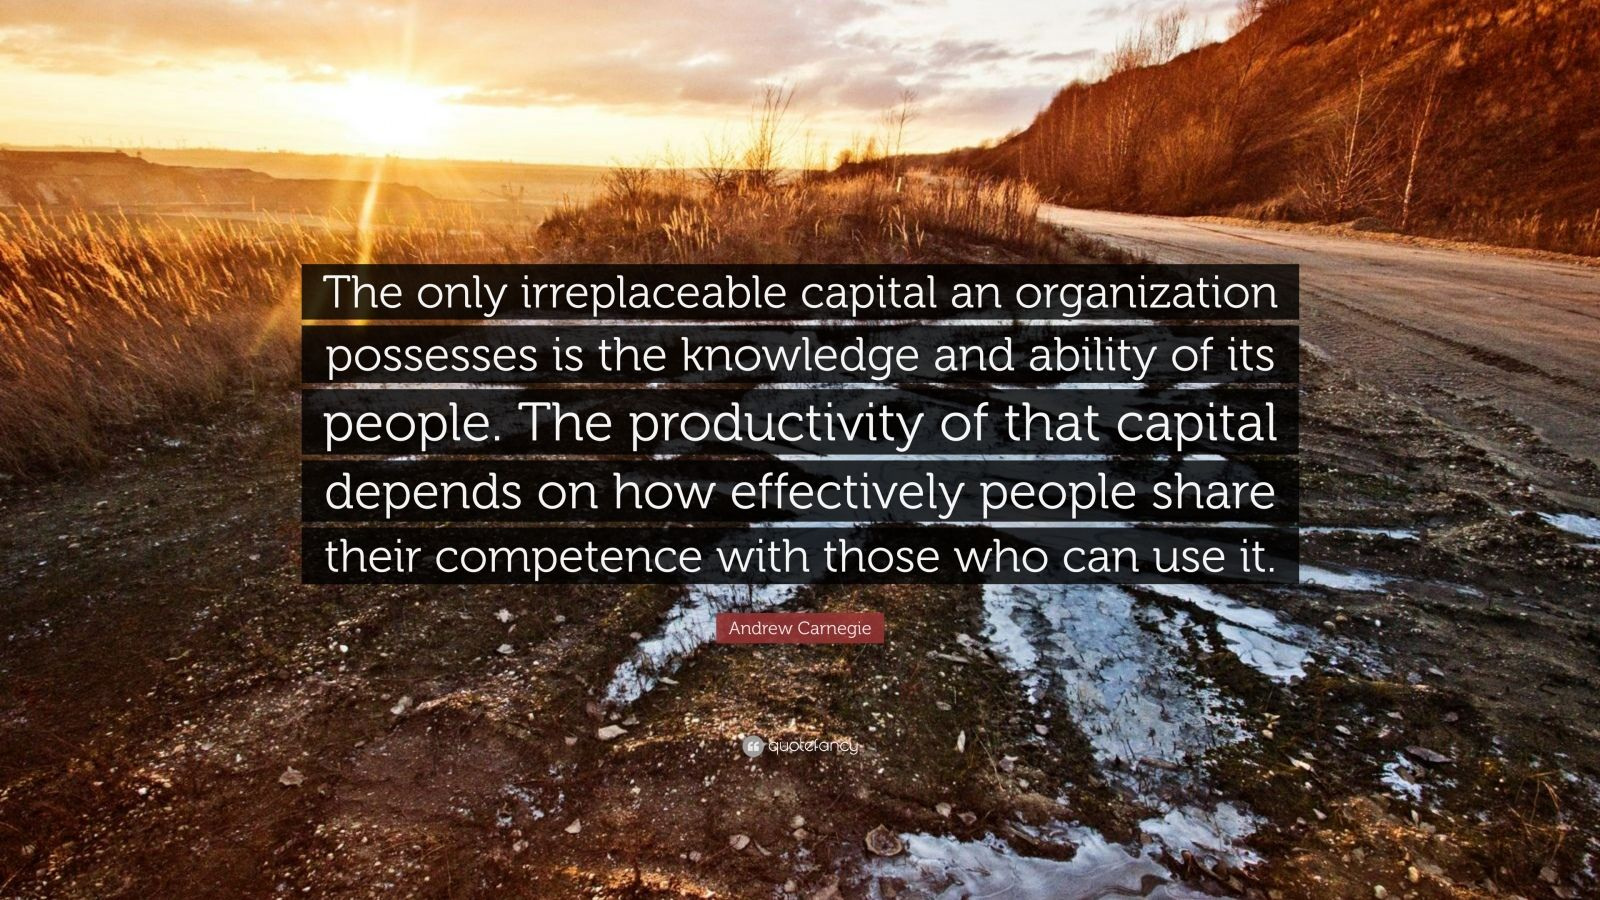 """Andrew Carnegie Quote: """"The only irreplaceable capital an organization possesses is the knowledge and ability of its people. The productivity of that capital depends on how effectively people share their competence with those who can use it."""""""